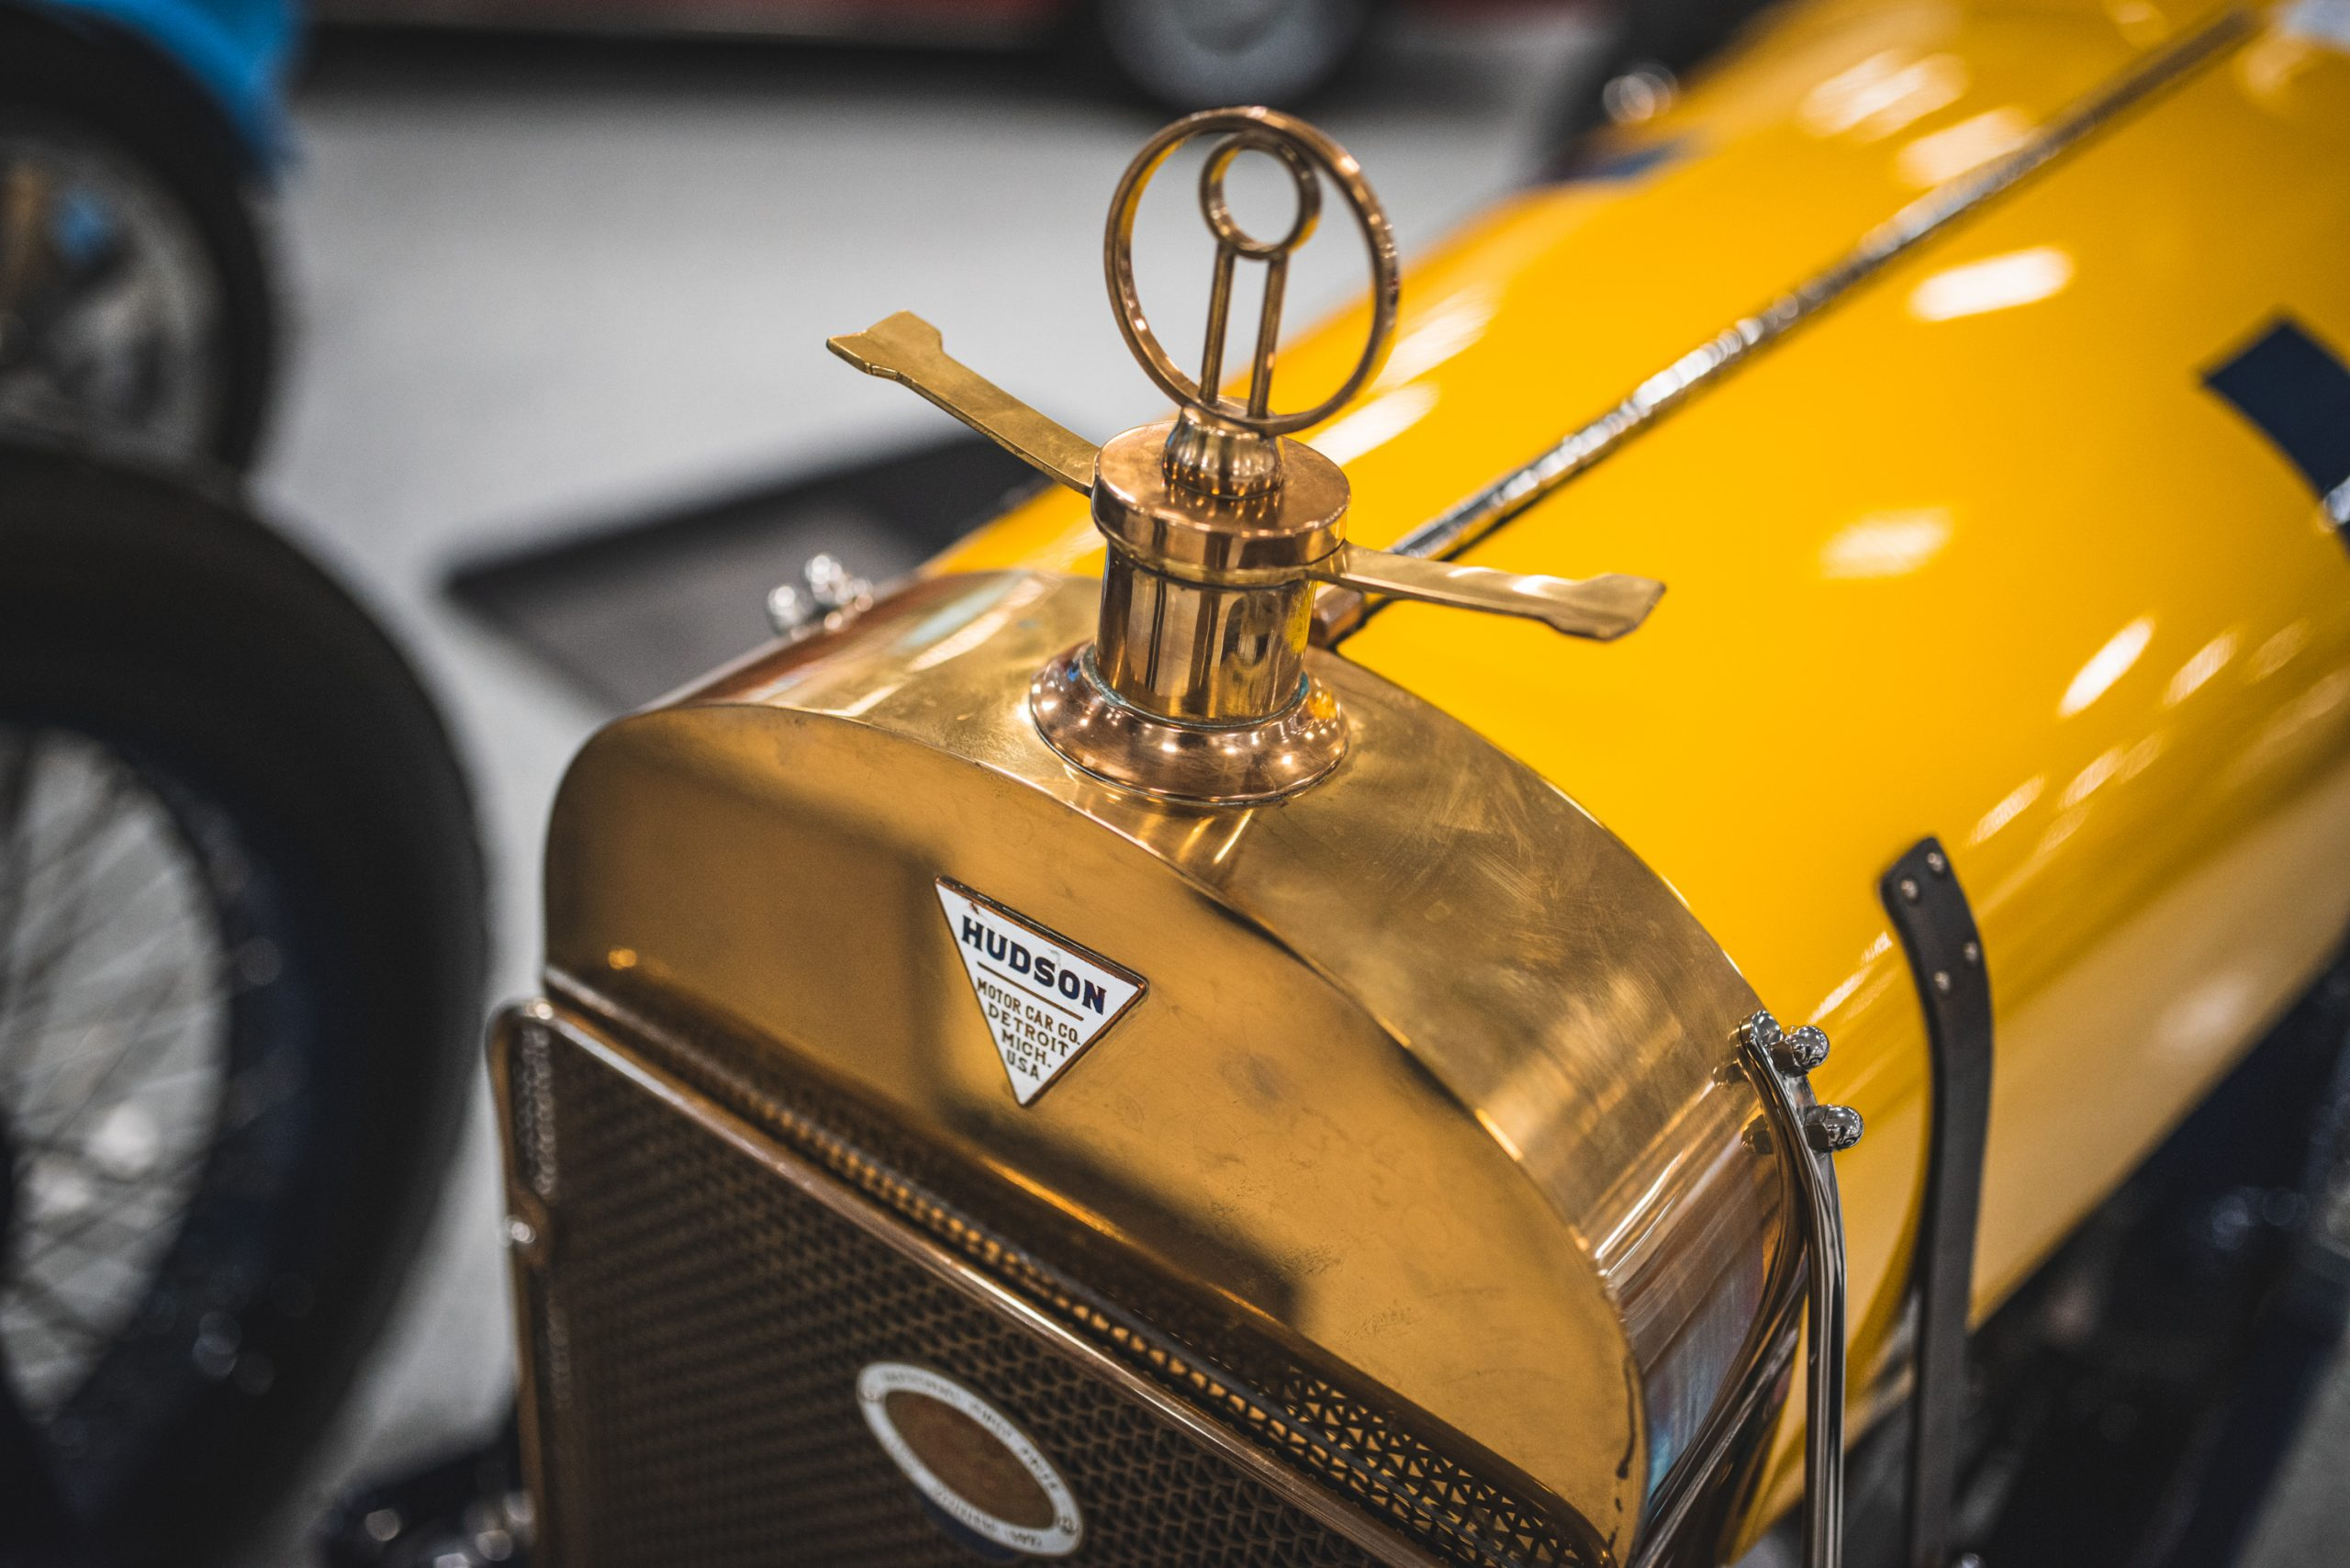 hudson roadster car gold yellow front